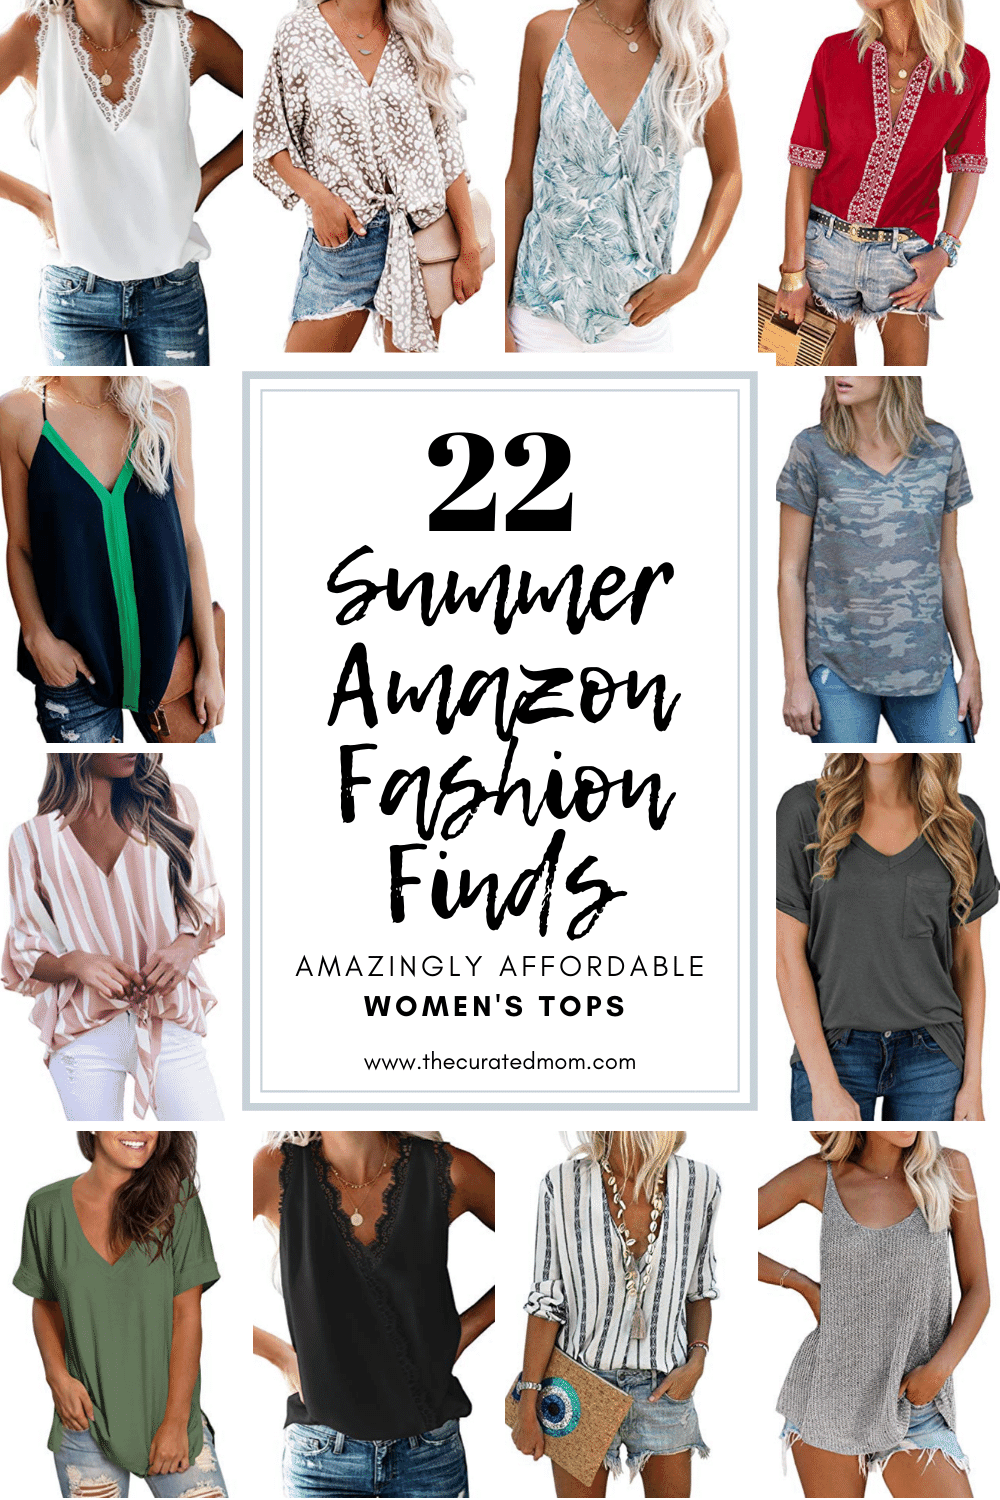 12 different summer tops from amazon with text reading 22 summer amazon fashion finds amazingly affordable women's tops